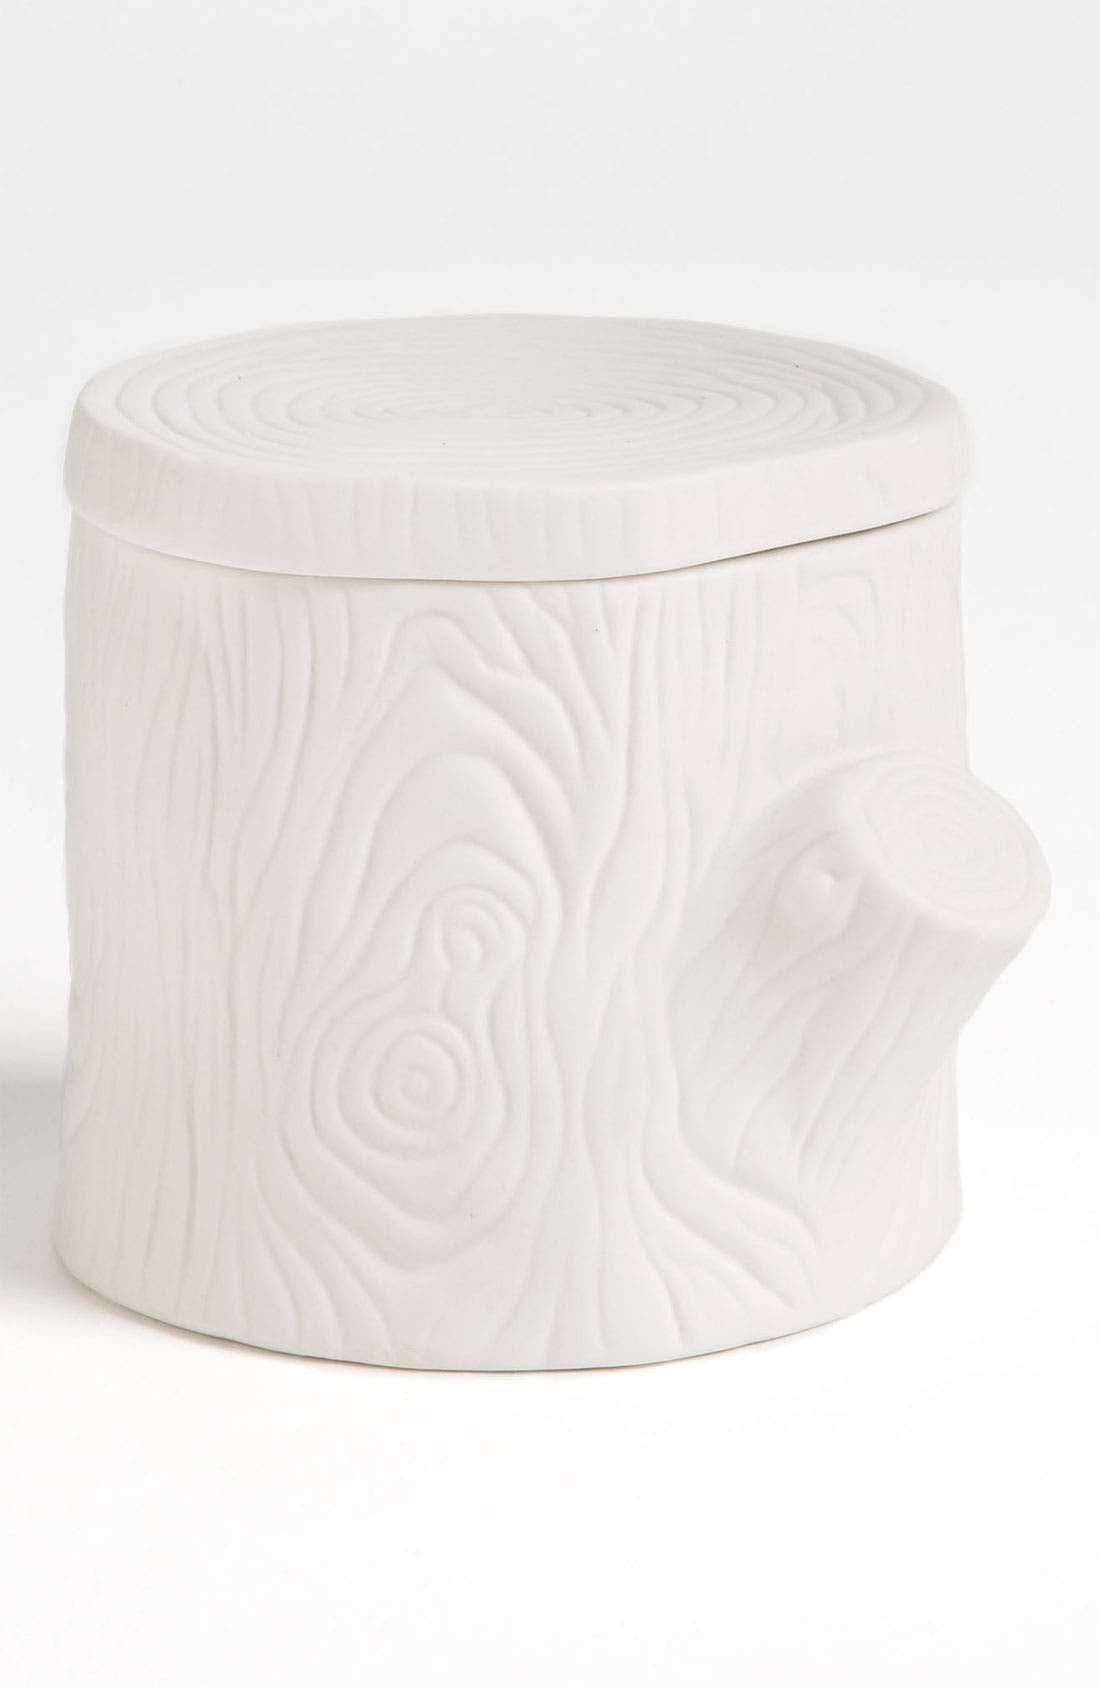 Alternate Image 1 Selected - 'Junk in The Trunk' Ceramic Box